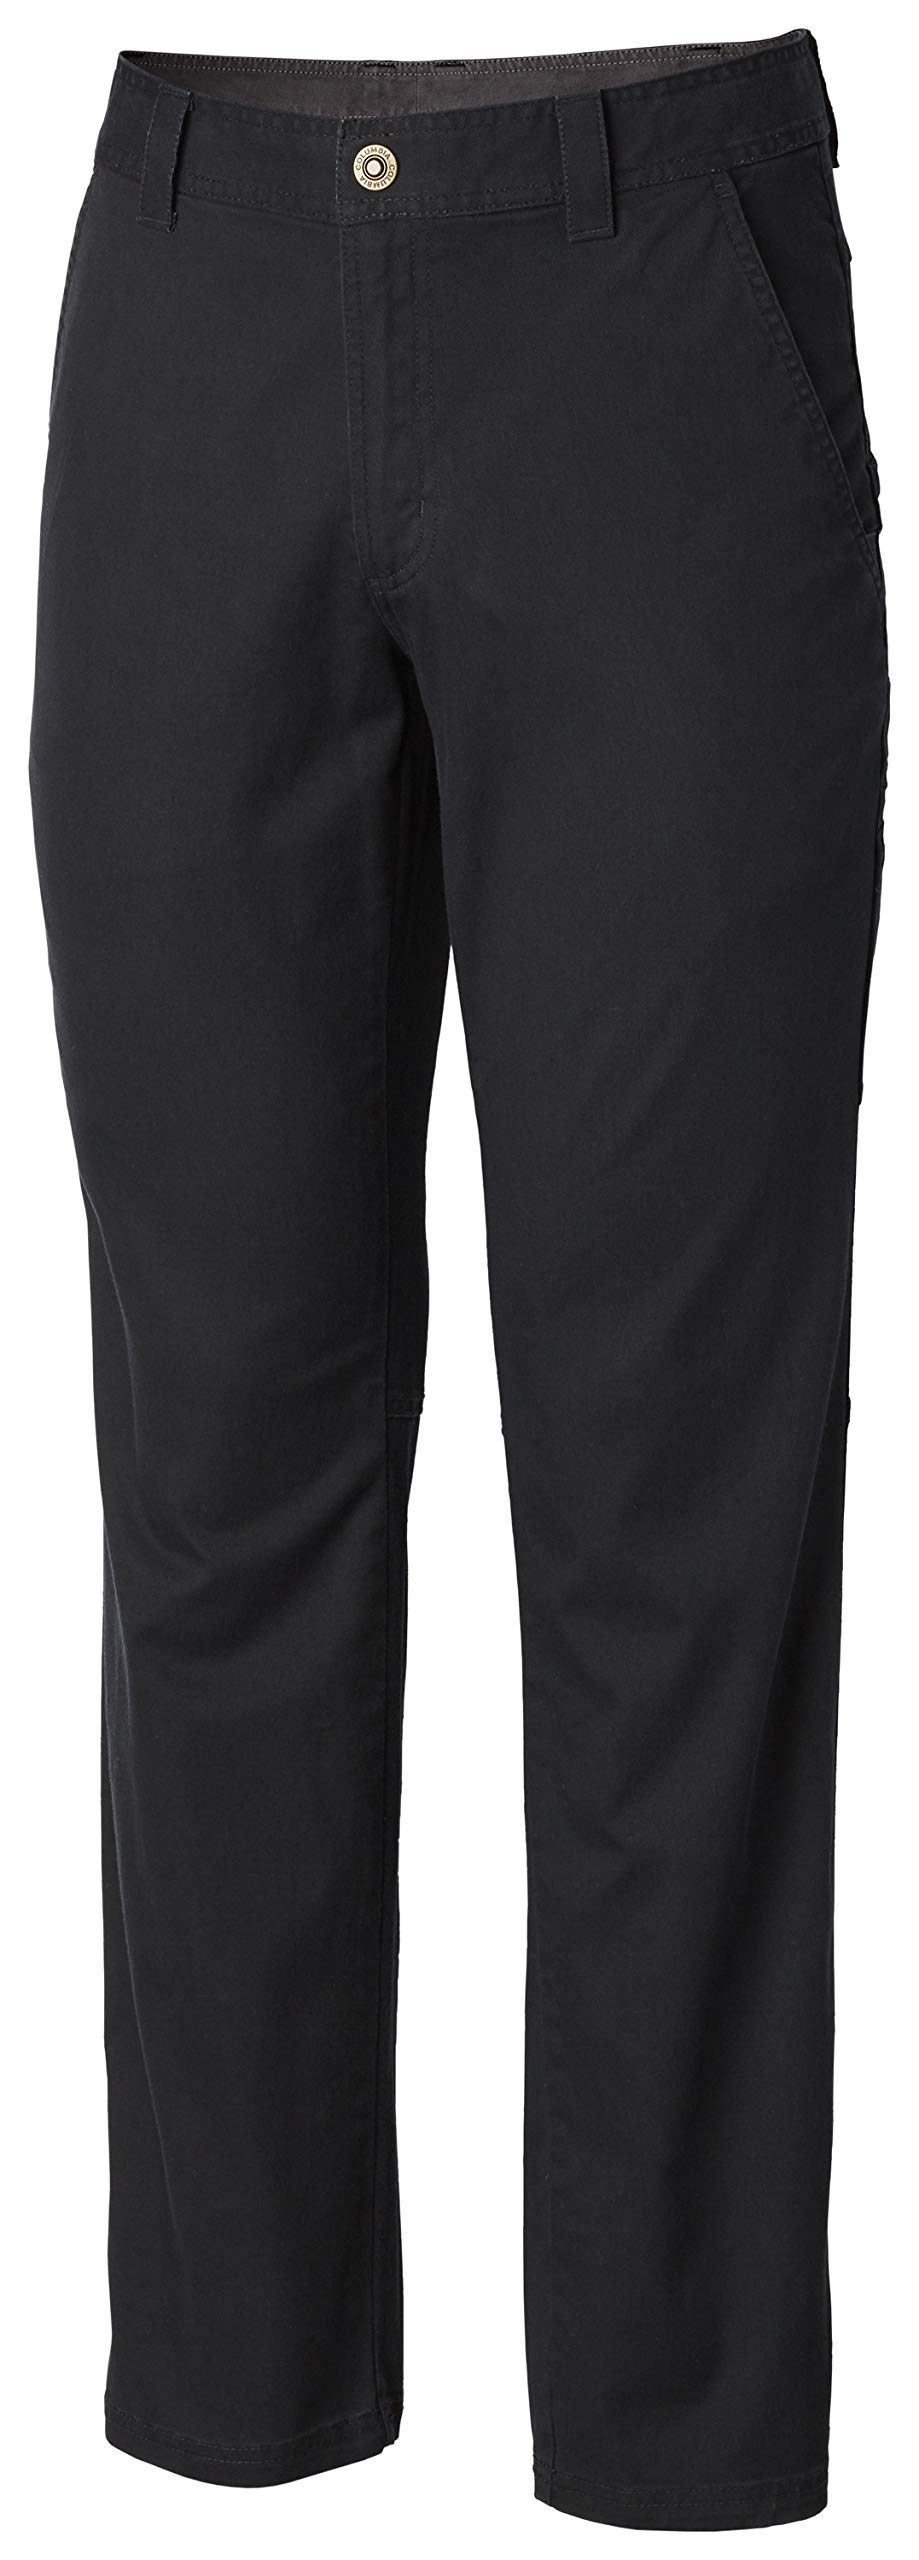 Columbia Men's Ultimate ROC Flex Pant, Black 30x30